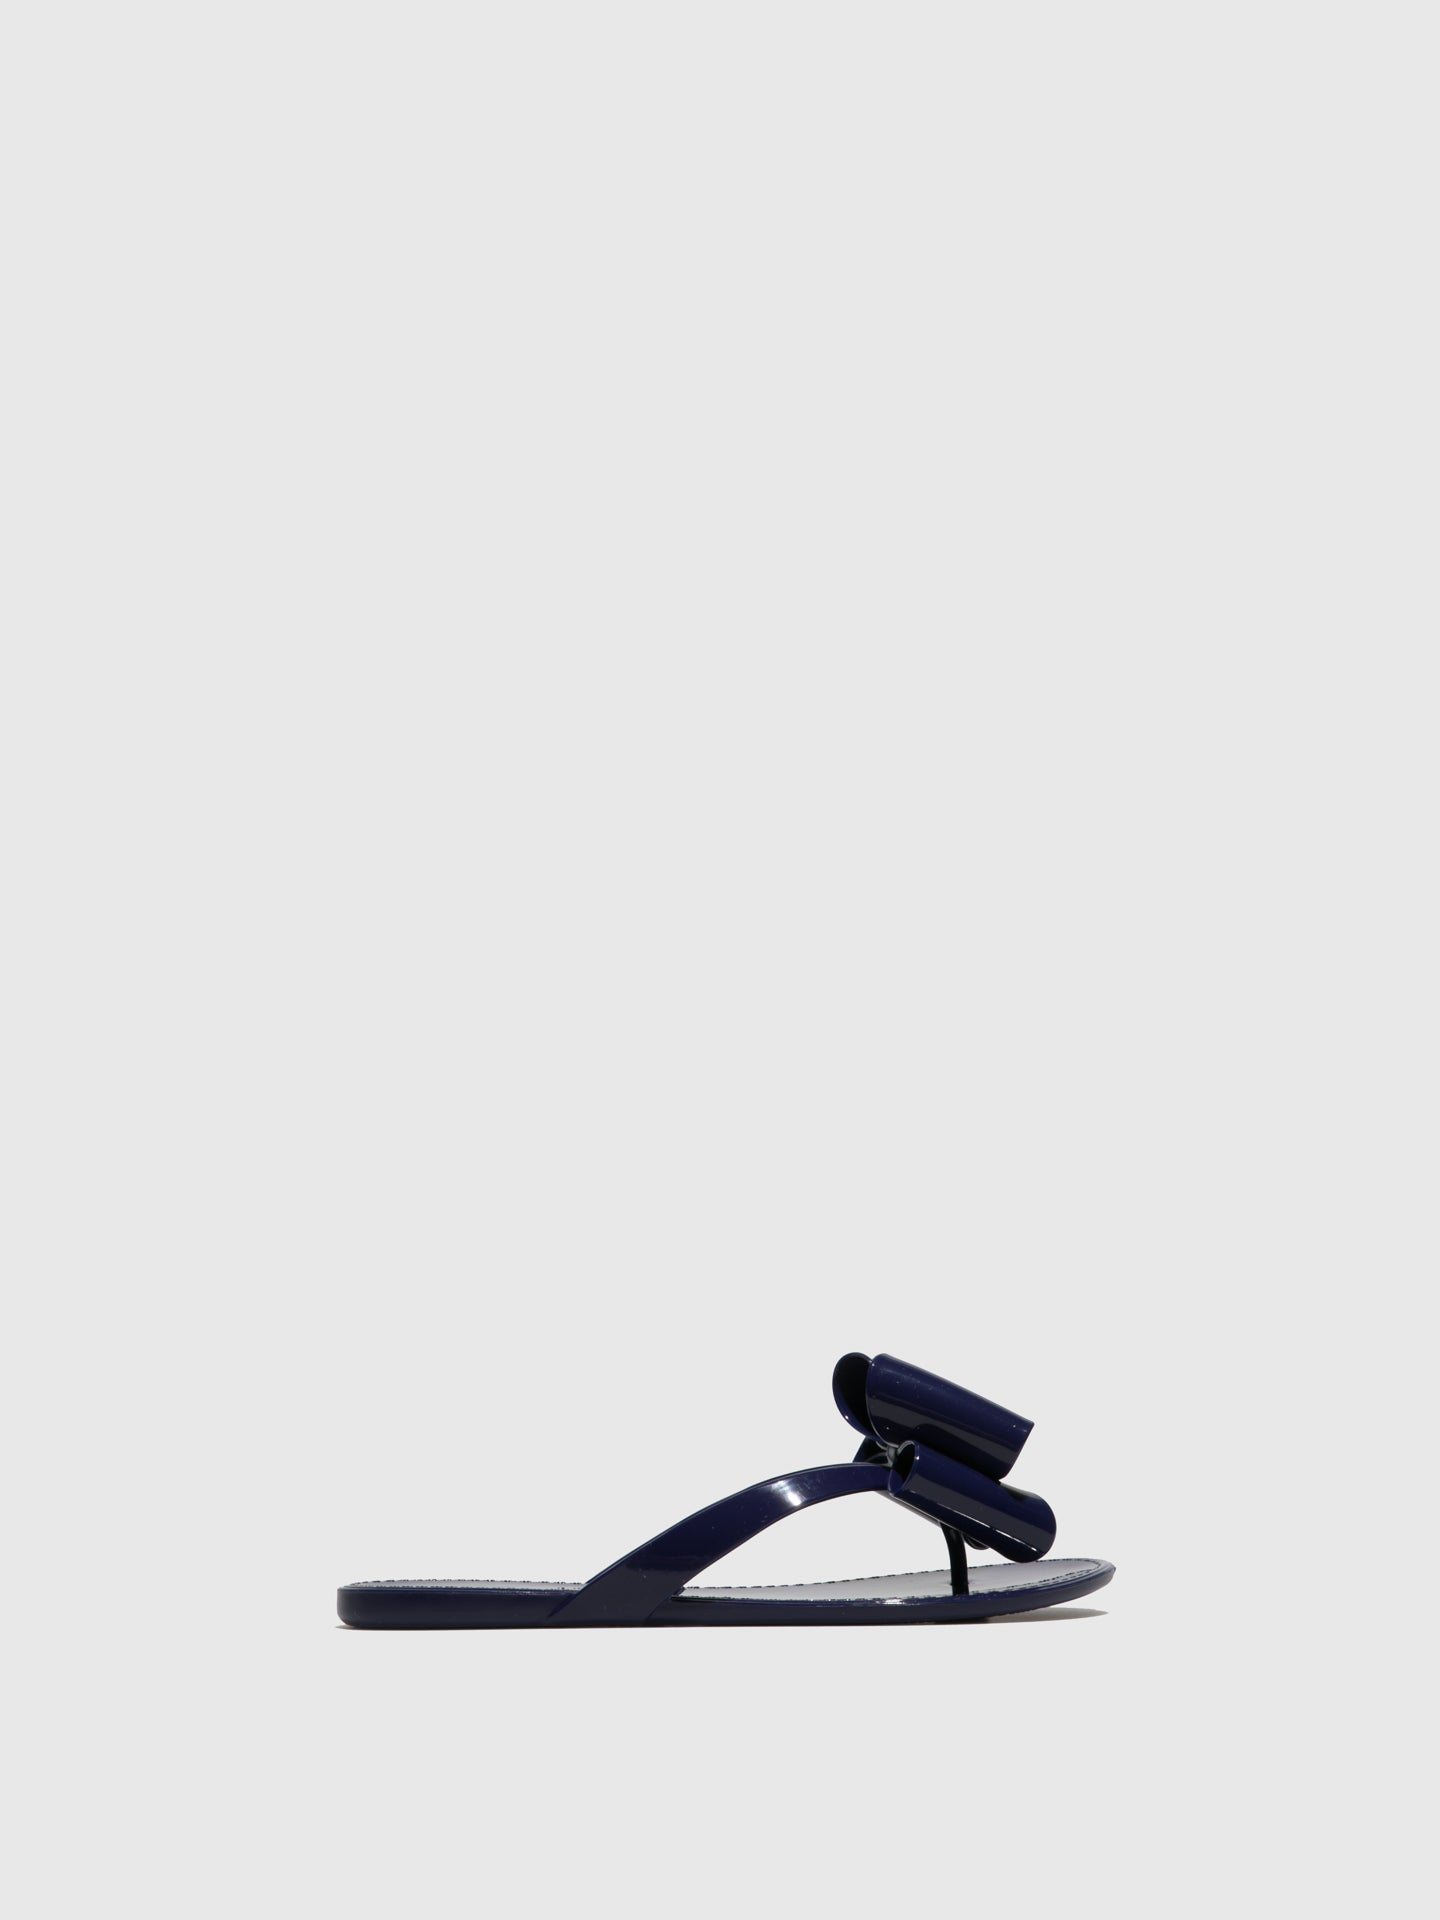 PETITE JOLIE by PARODI Purple Beach Flip-Flops